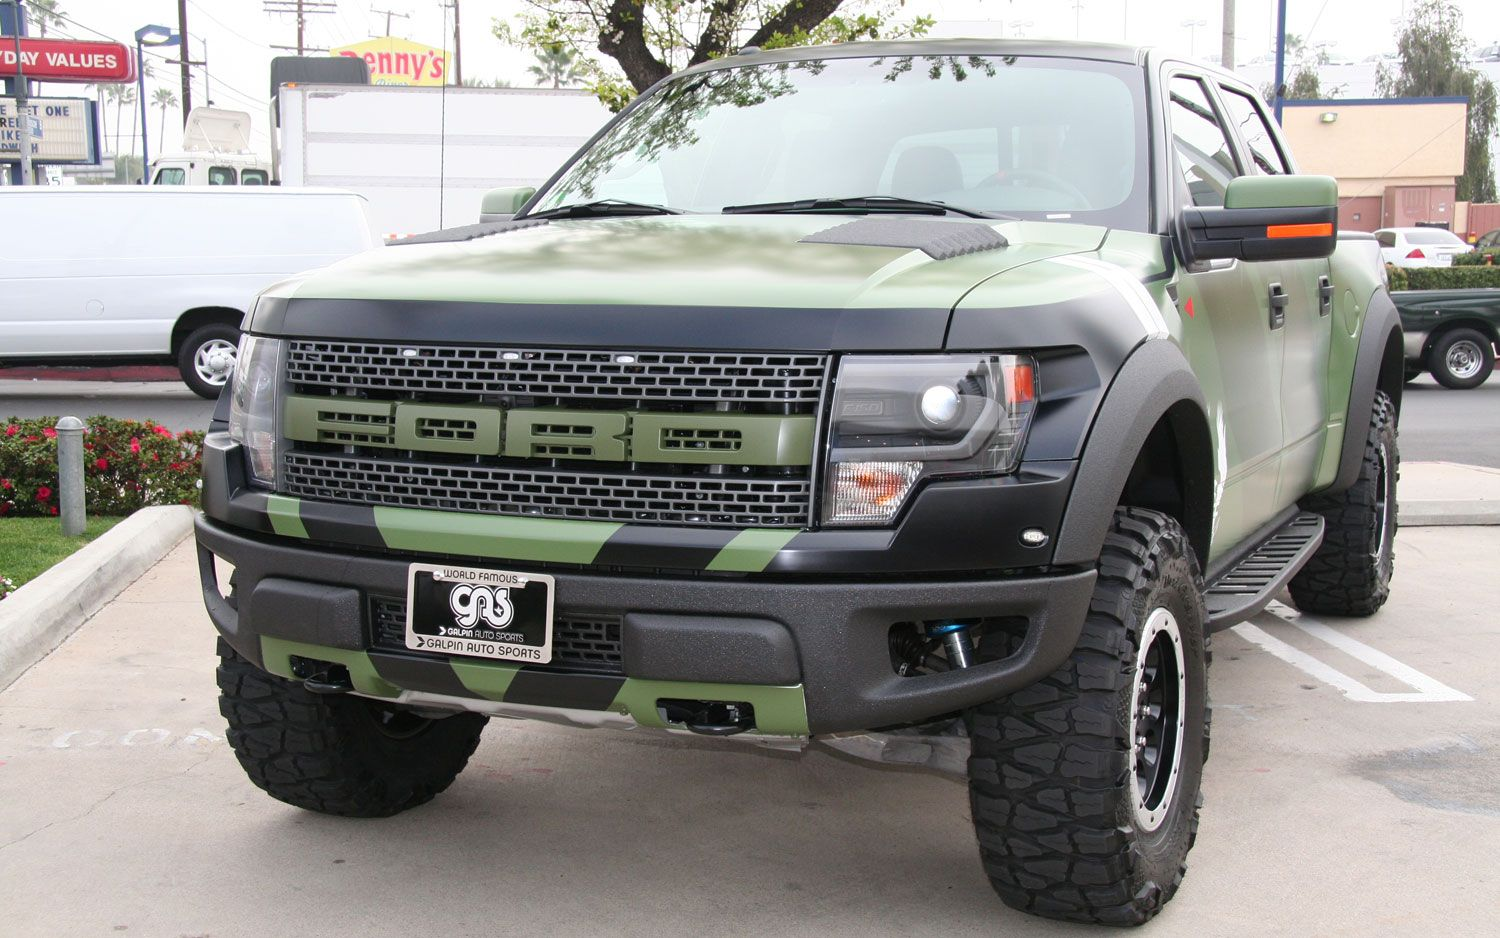 The ford svt raptor truck series extra wide stance specially engineered suspension and